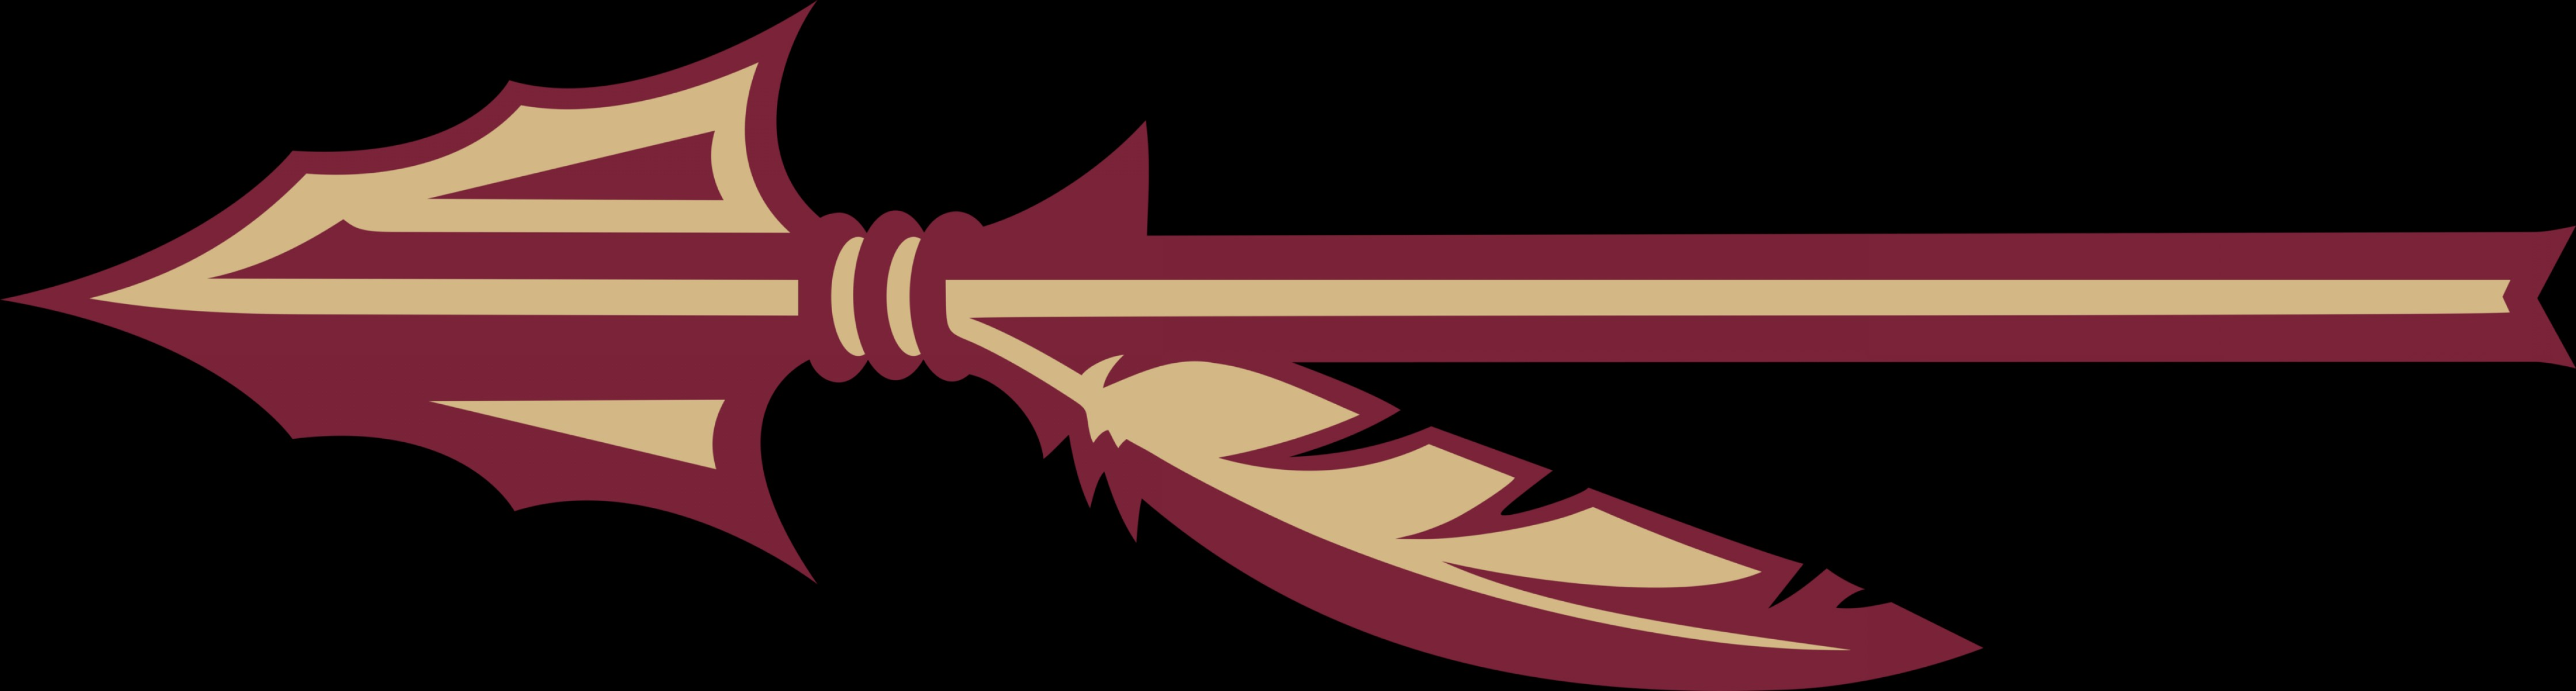 Florida State University Logo Vector: New Fsu Spear And Pattern